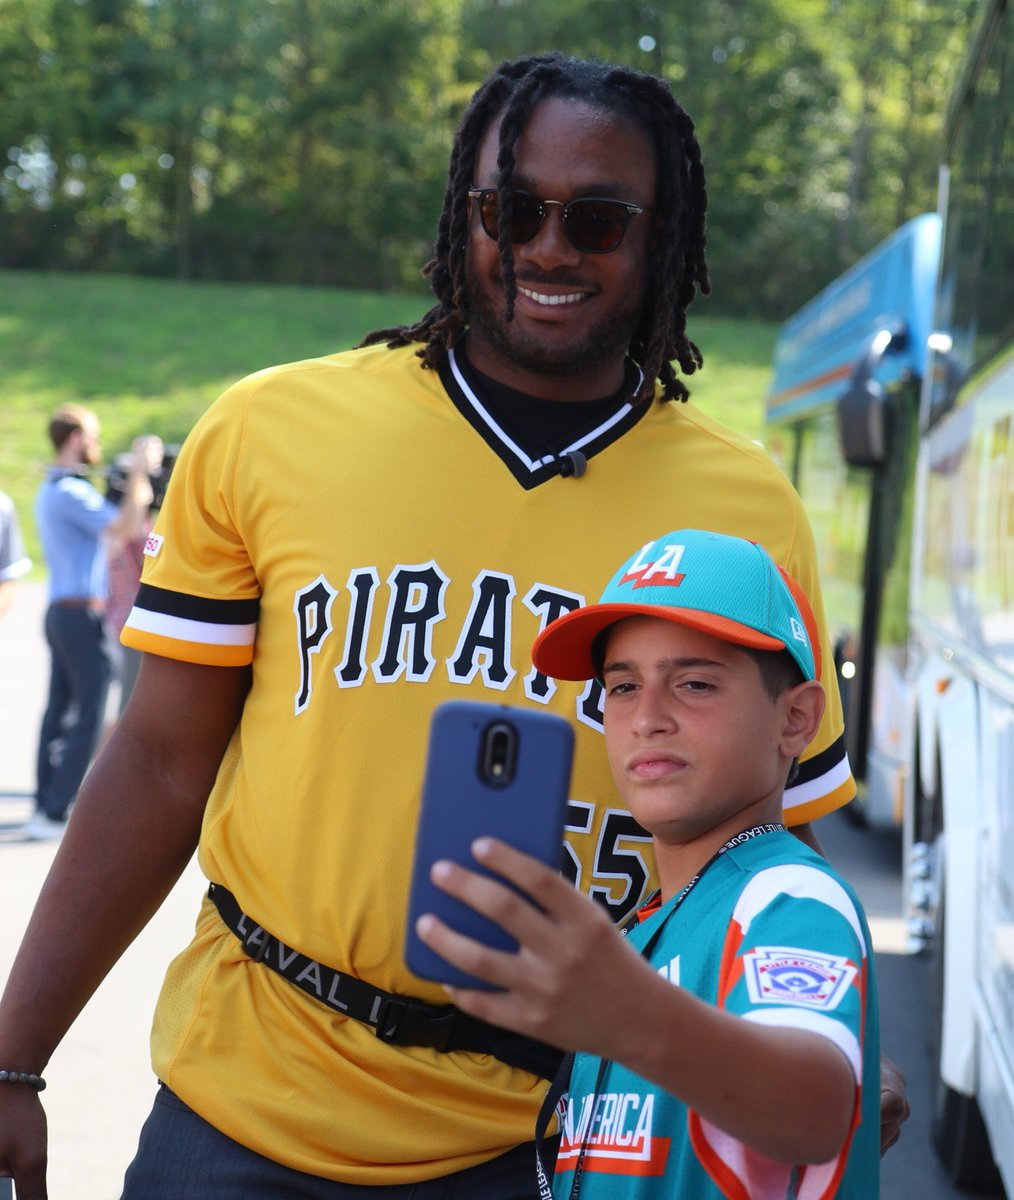 The @Pirates are making memories at the @GEICO #LittleLeagueClassic.